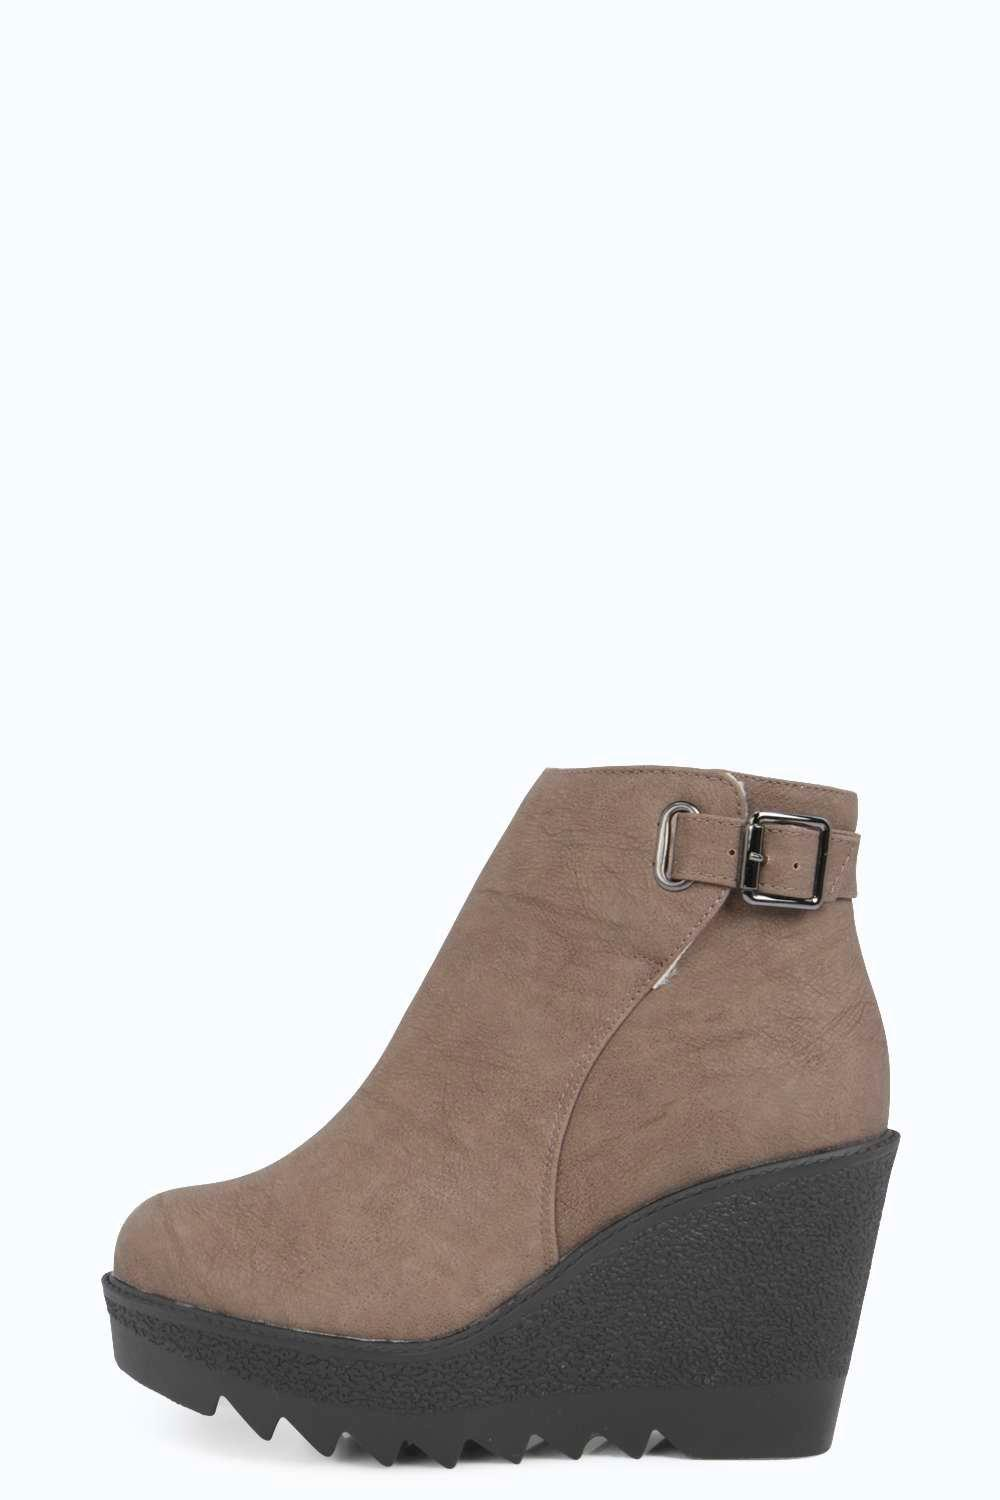 cleated sole wedge boot at boohoo